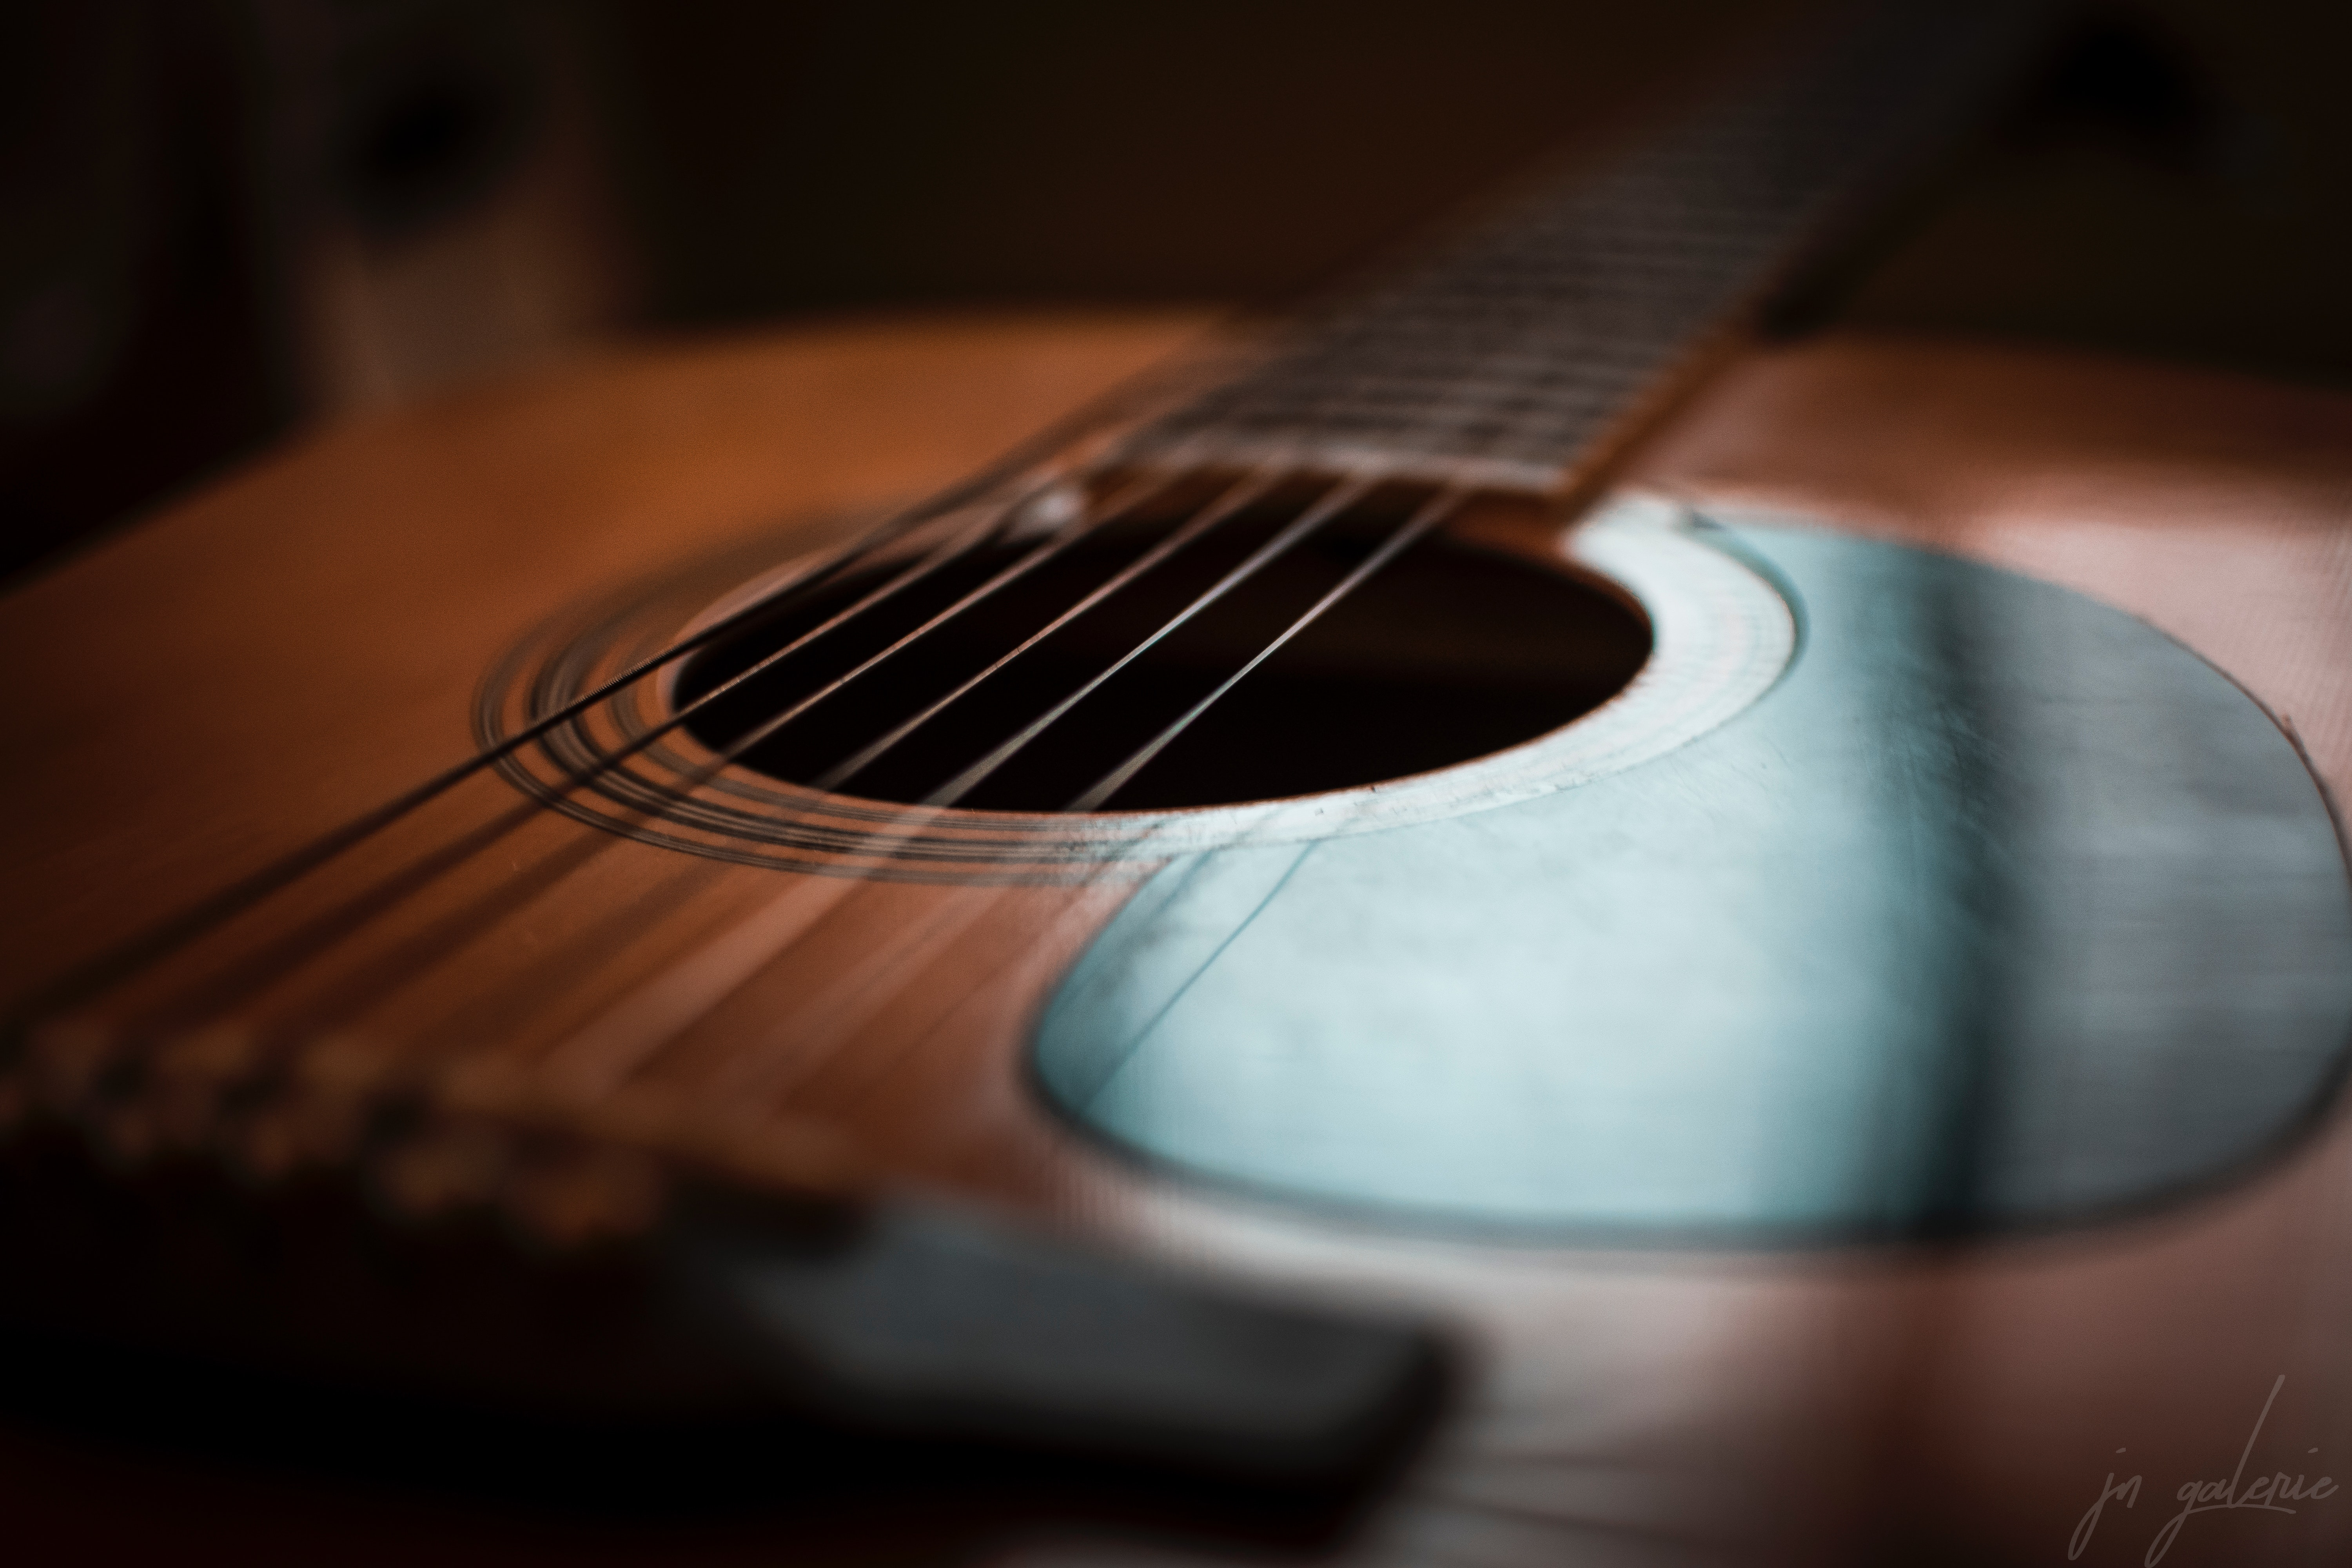 Free stock photo of cords, guitar, guitar strings